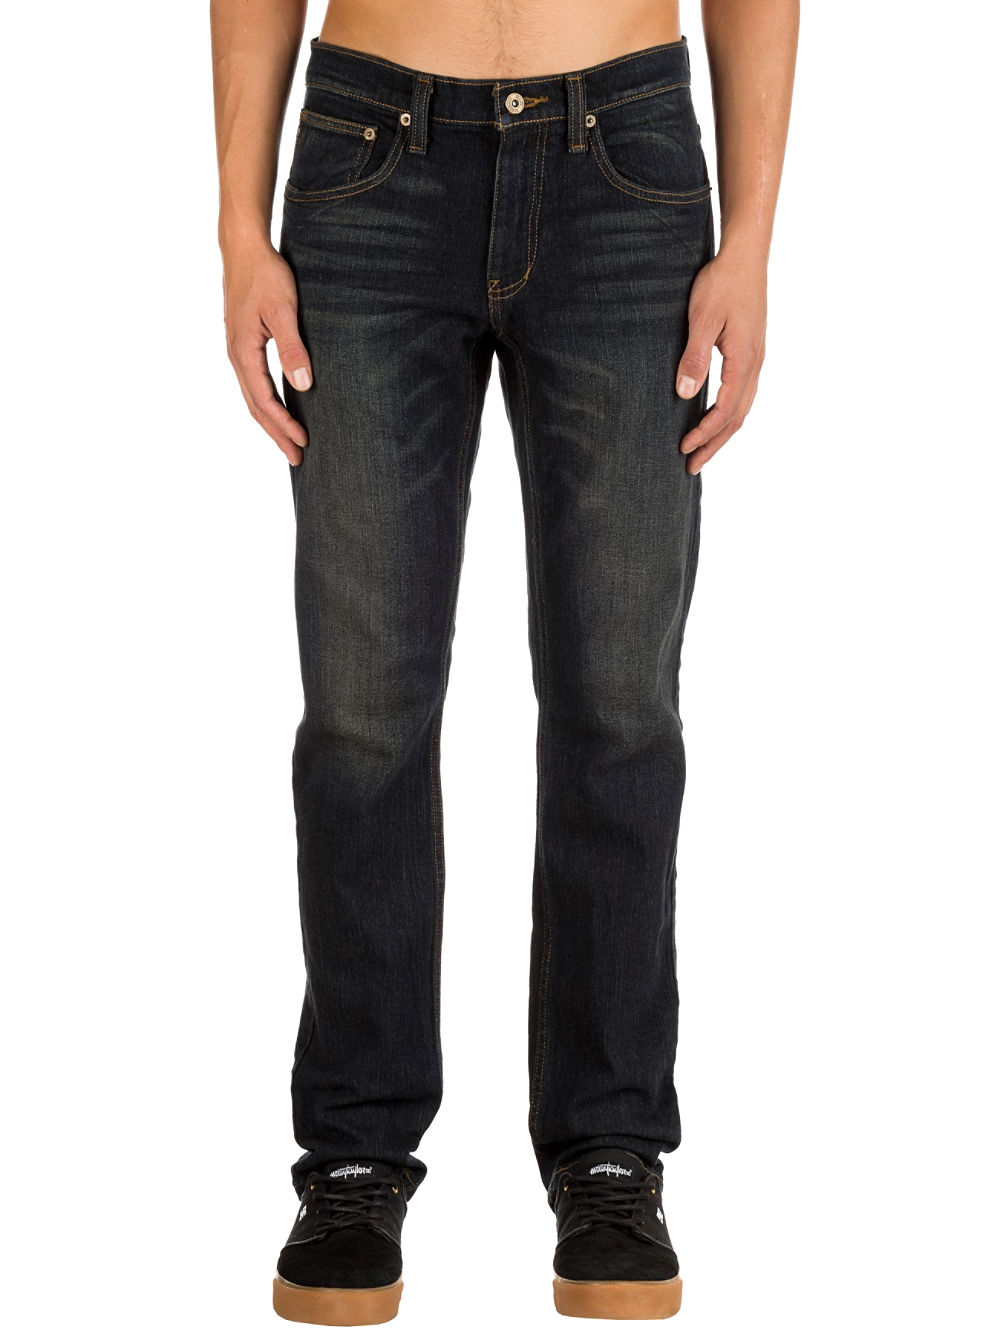 Messenger Stretch Jeans